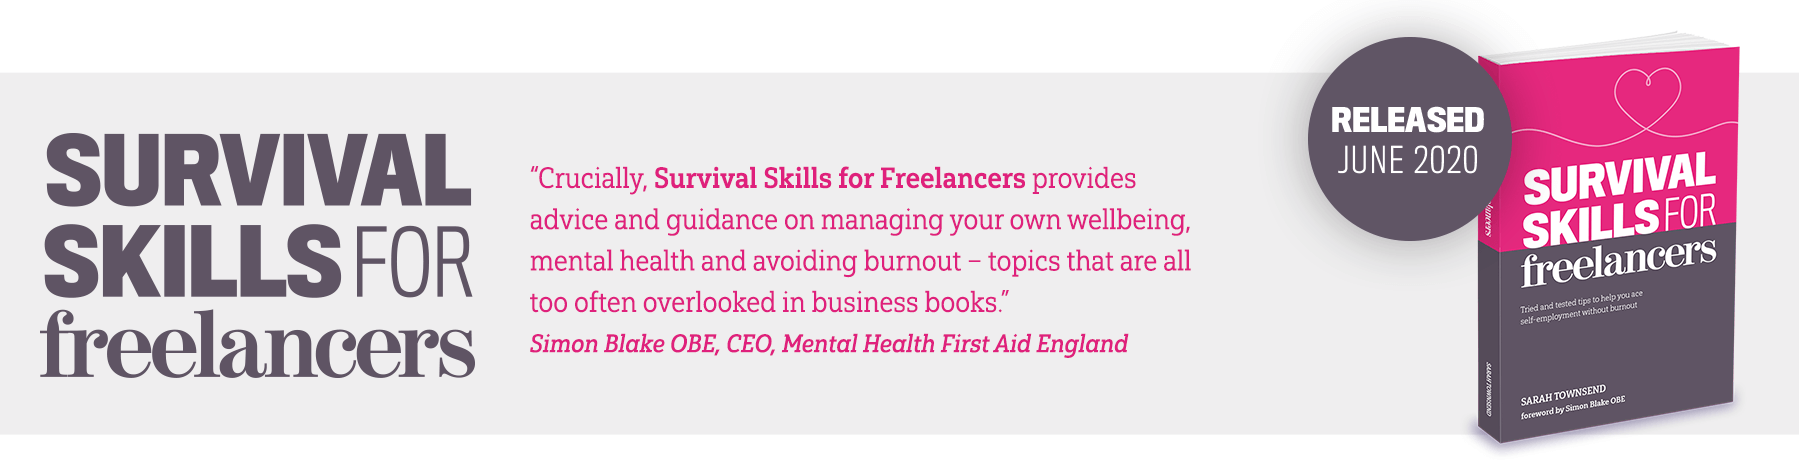 Survivial Skills for Freelancers